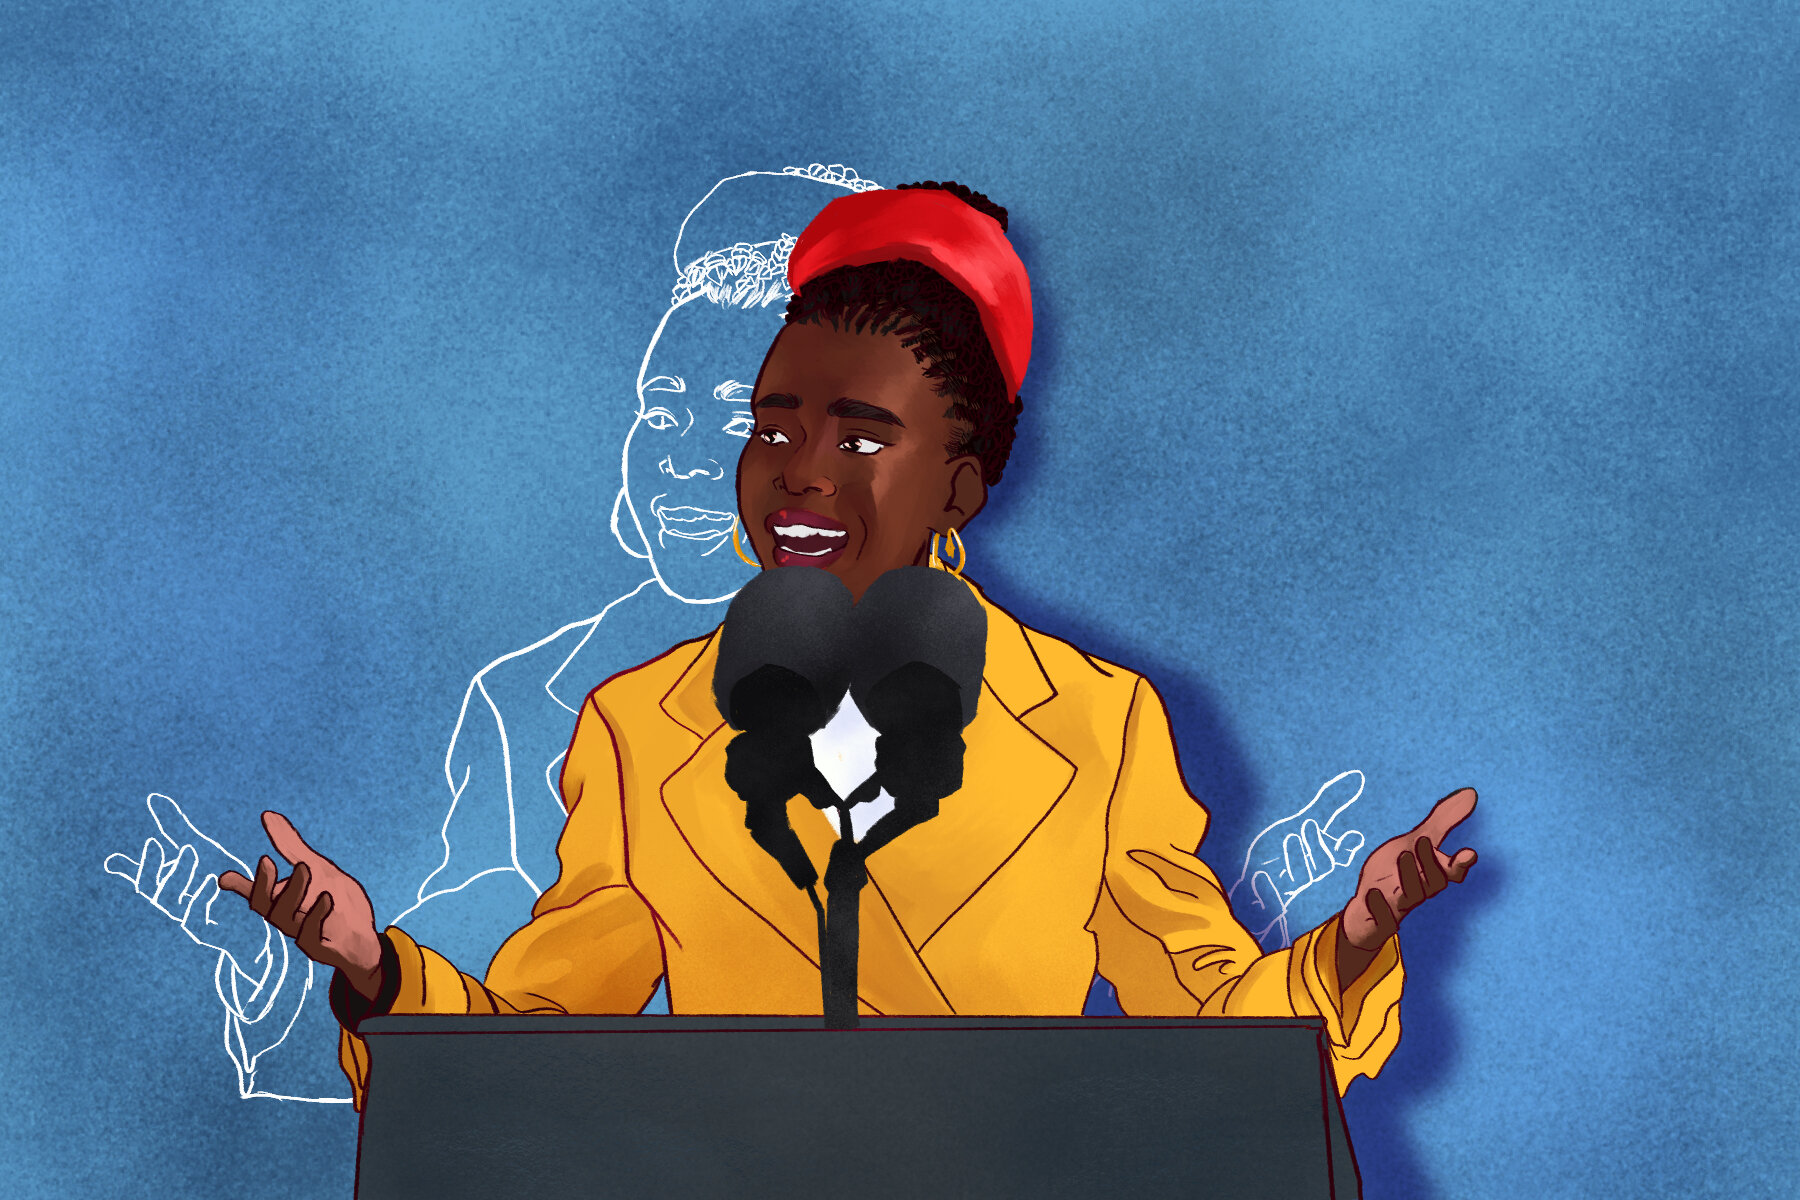 An illustration of Amanda Gorman speaking at the presidential inauguration ceremony in an article about her accomplishments. (Illustration by Lucas DeJesus, Montserrat College of Art)